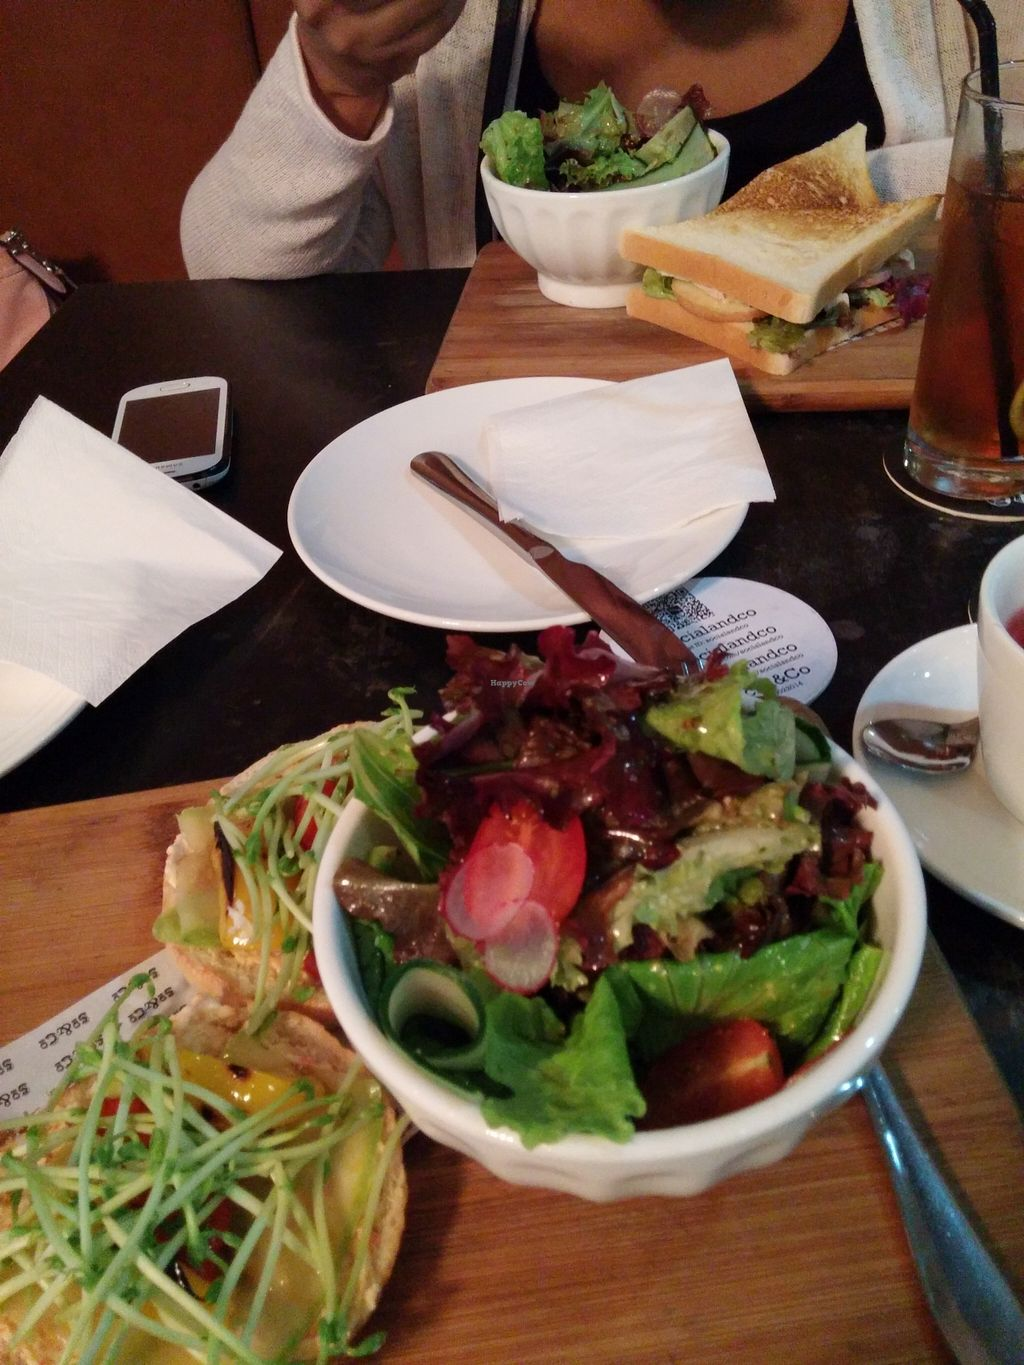 """Photo of Joy Vege - Soodle  by <a href=""""/members/profile/kbcbs616"""">kbcbs616</a> <br/>Delicious Lunch bagel and spring salad Artichoke patties <br/> January 17, 2016  - <a href='/contact/abuse/image/56026/132811'>Report</a>"""